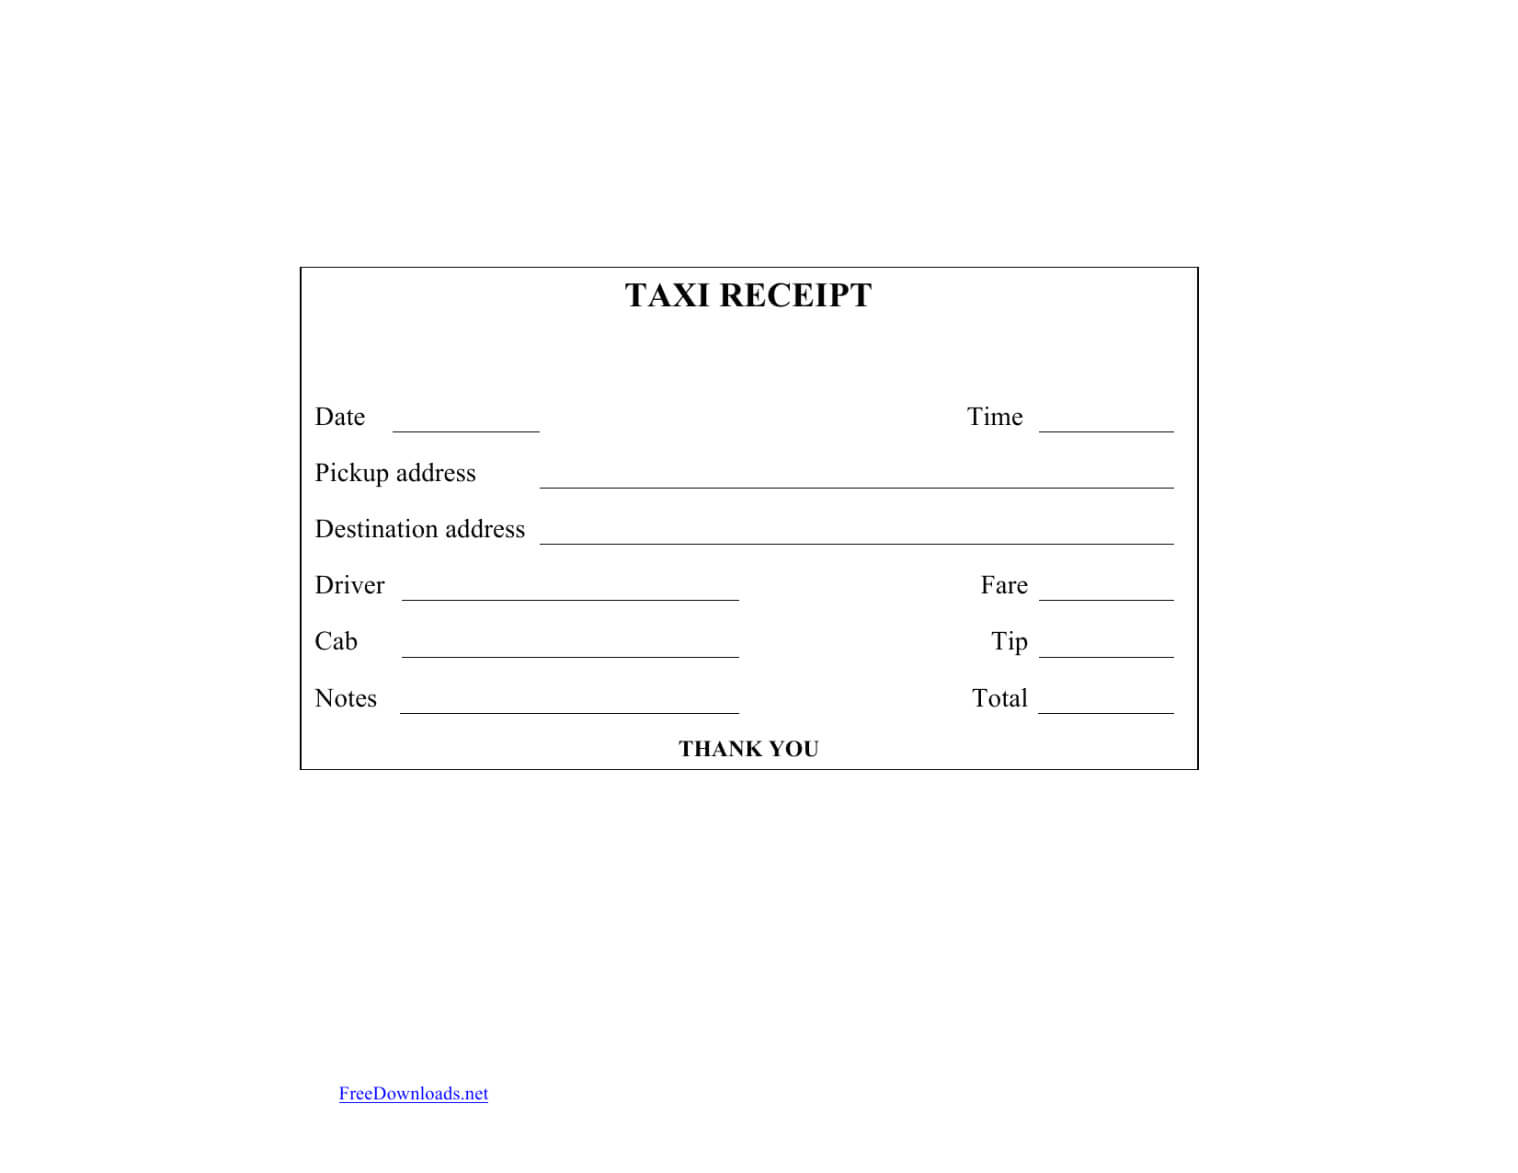 Download Blank Printable Taxi Cab Receipt Template Excel Regarding Blank Taxi Receipt Template